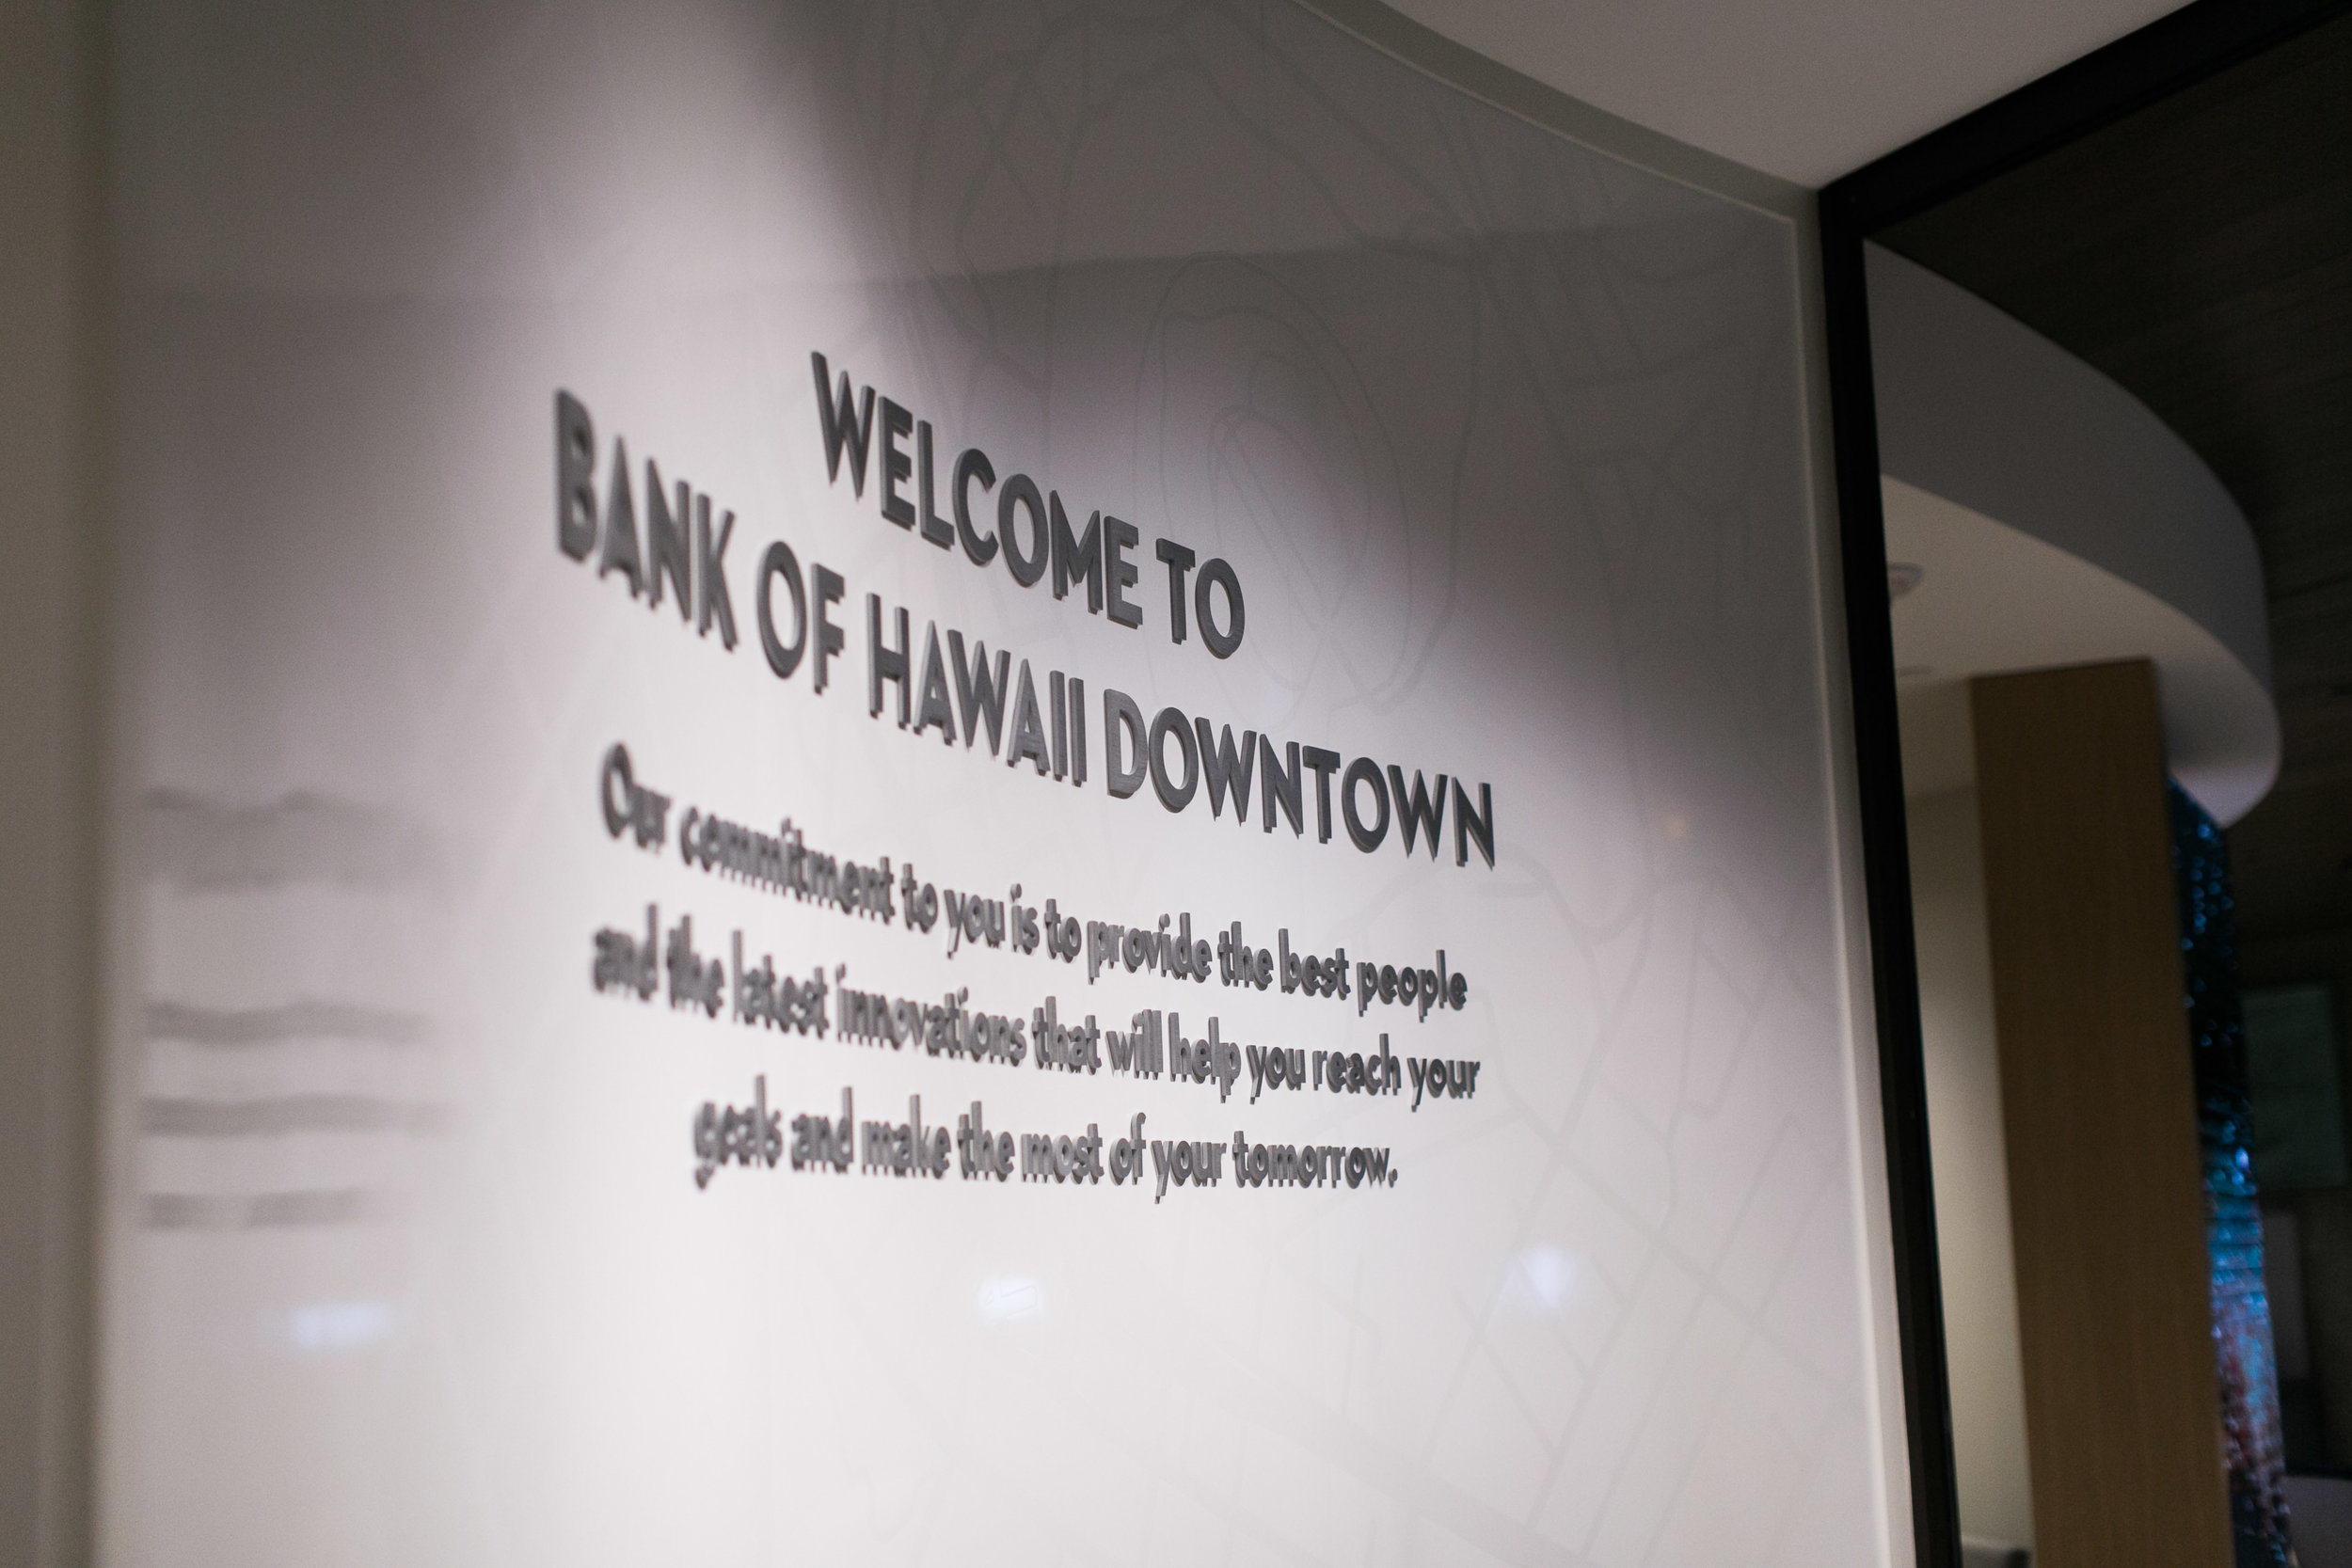 CURATE-BOH-Downtown-Welcome.jpg